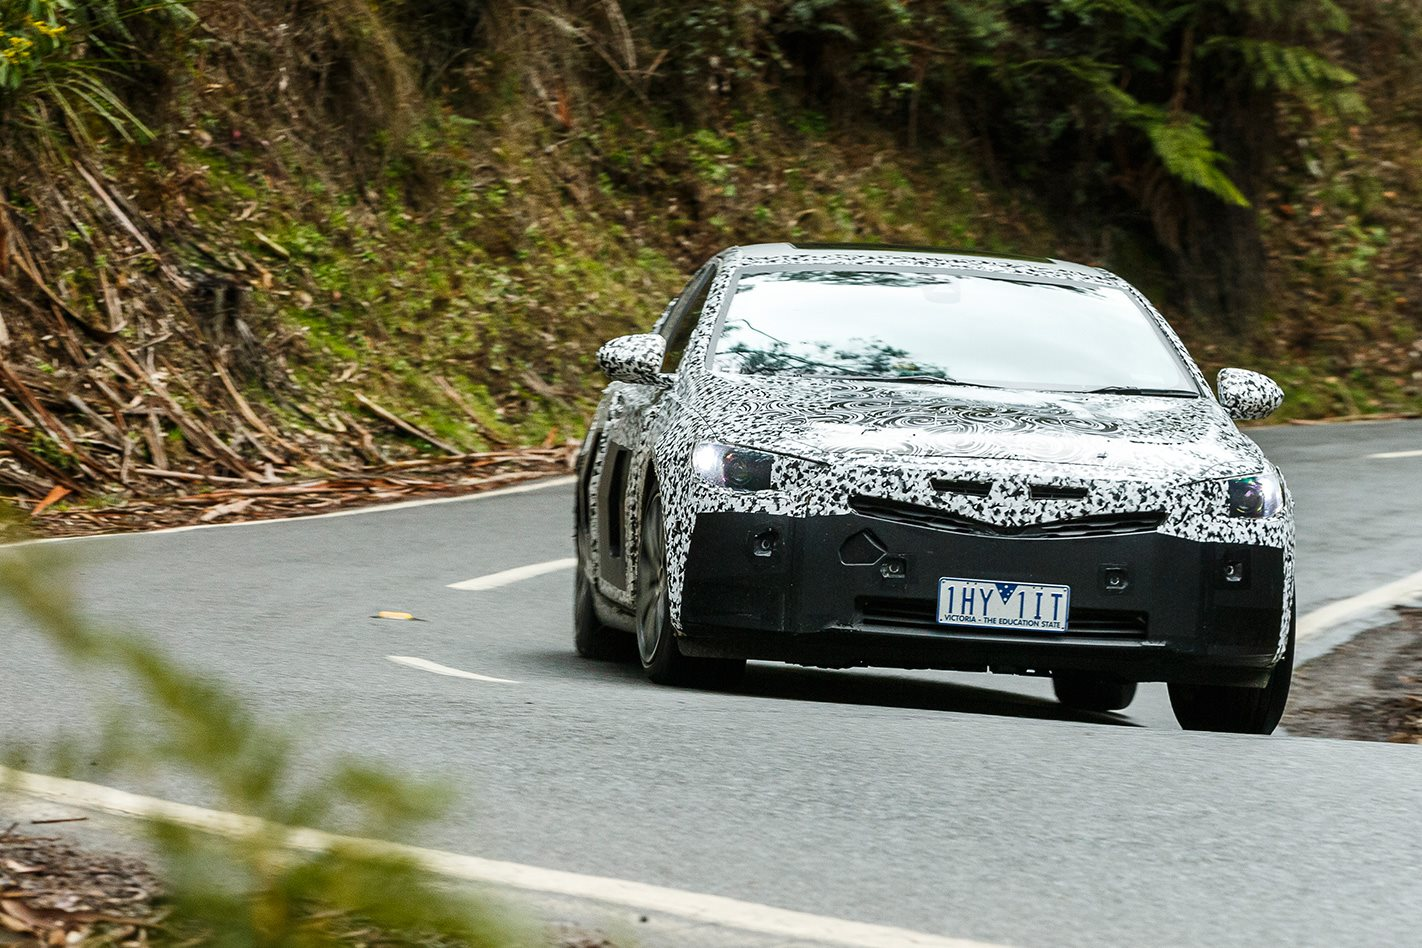 2018-Holden-Commodore-V6-AWD-prototype-headlights.jpg